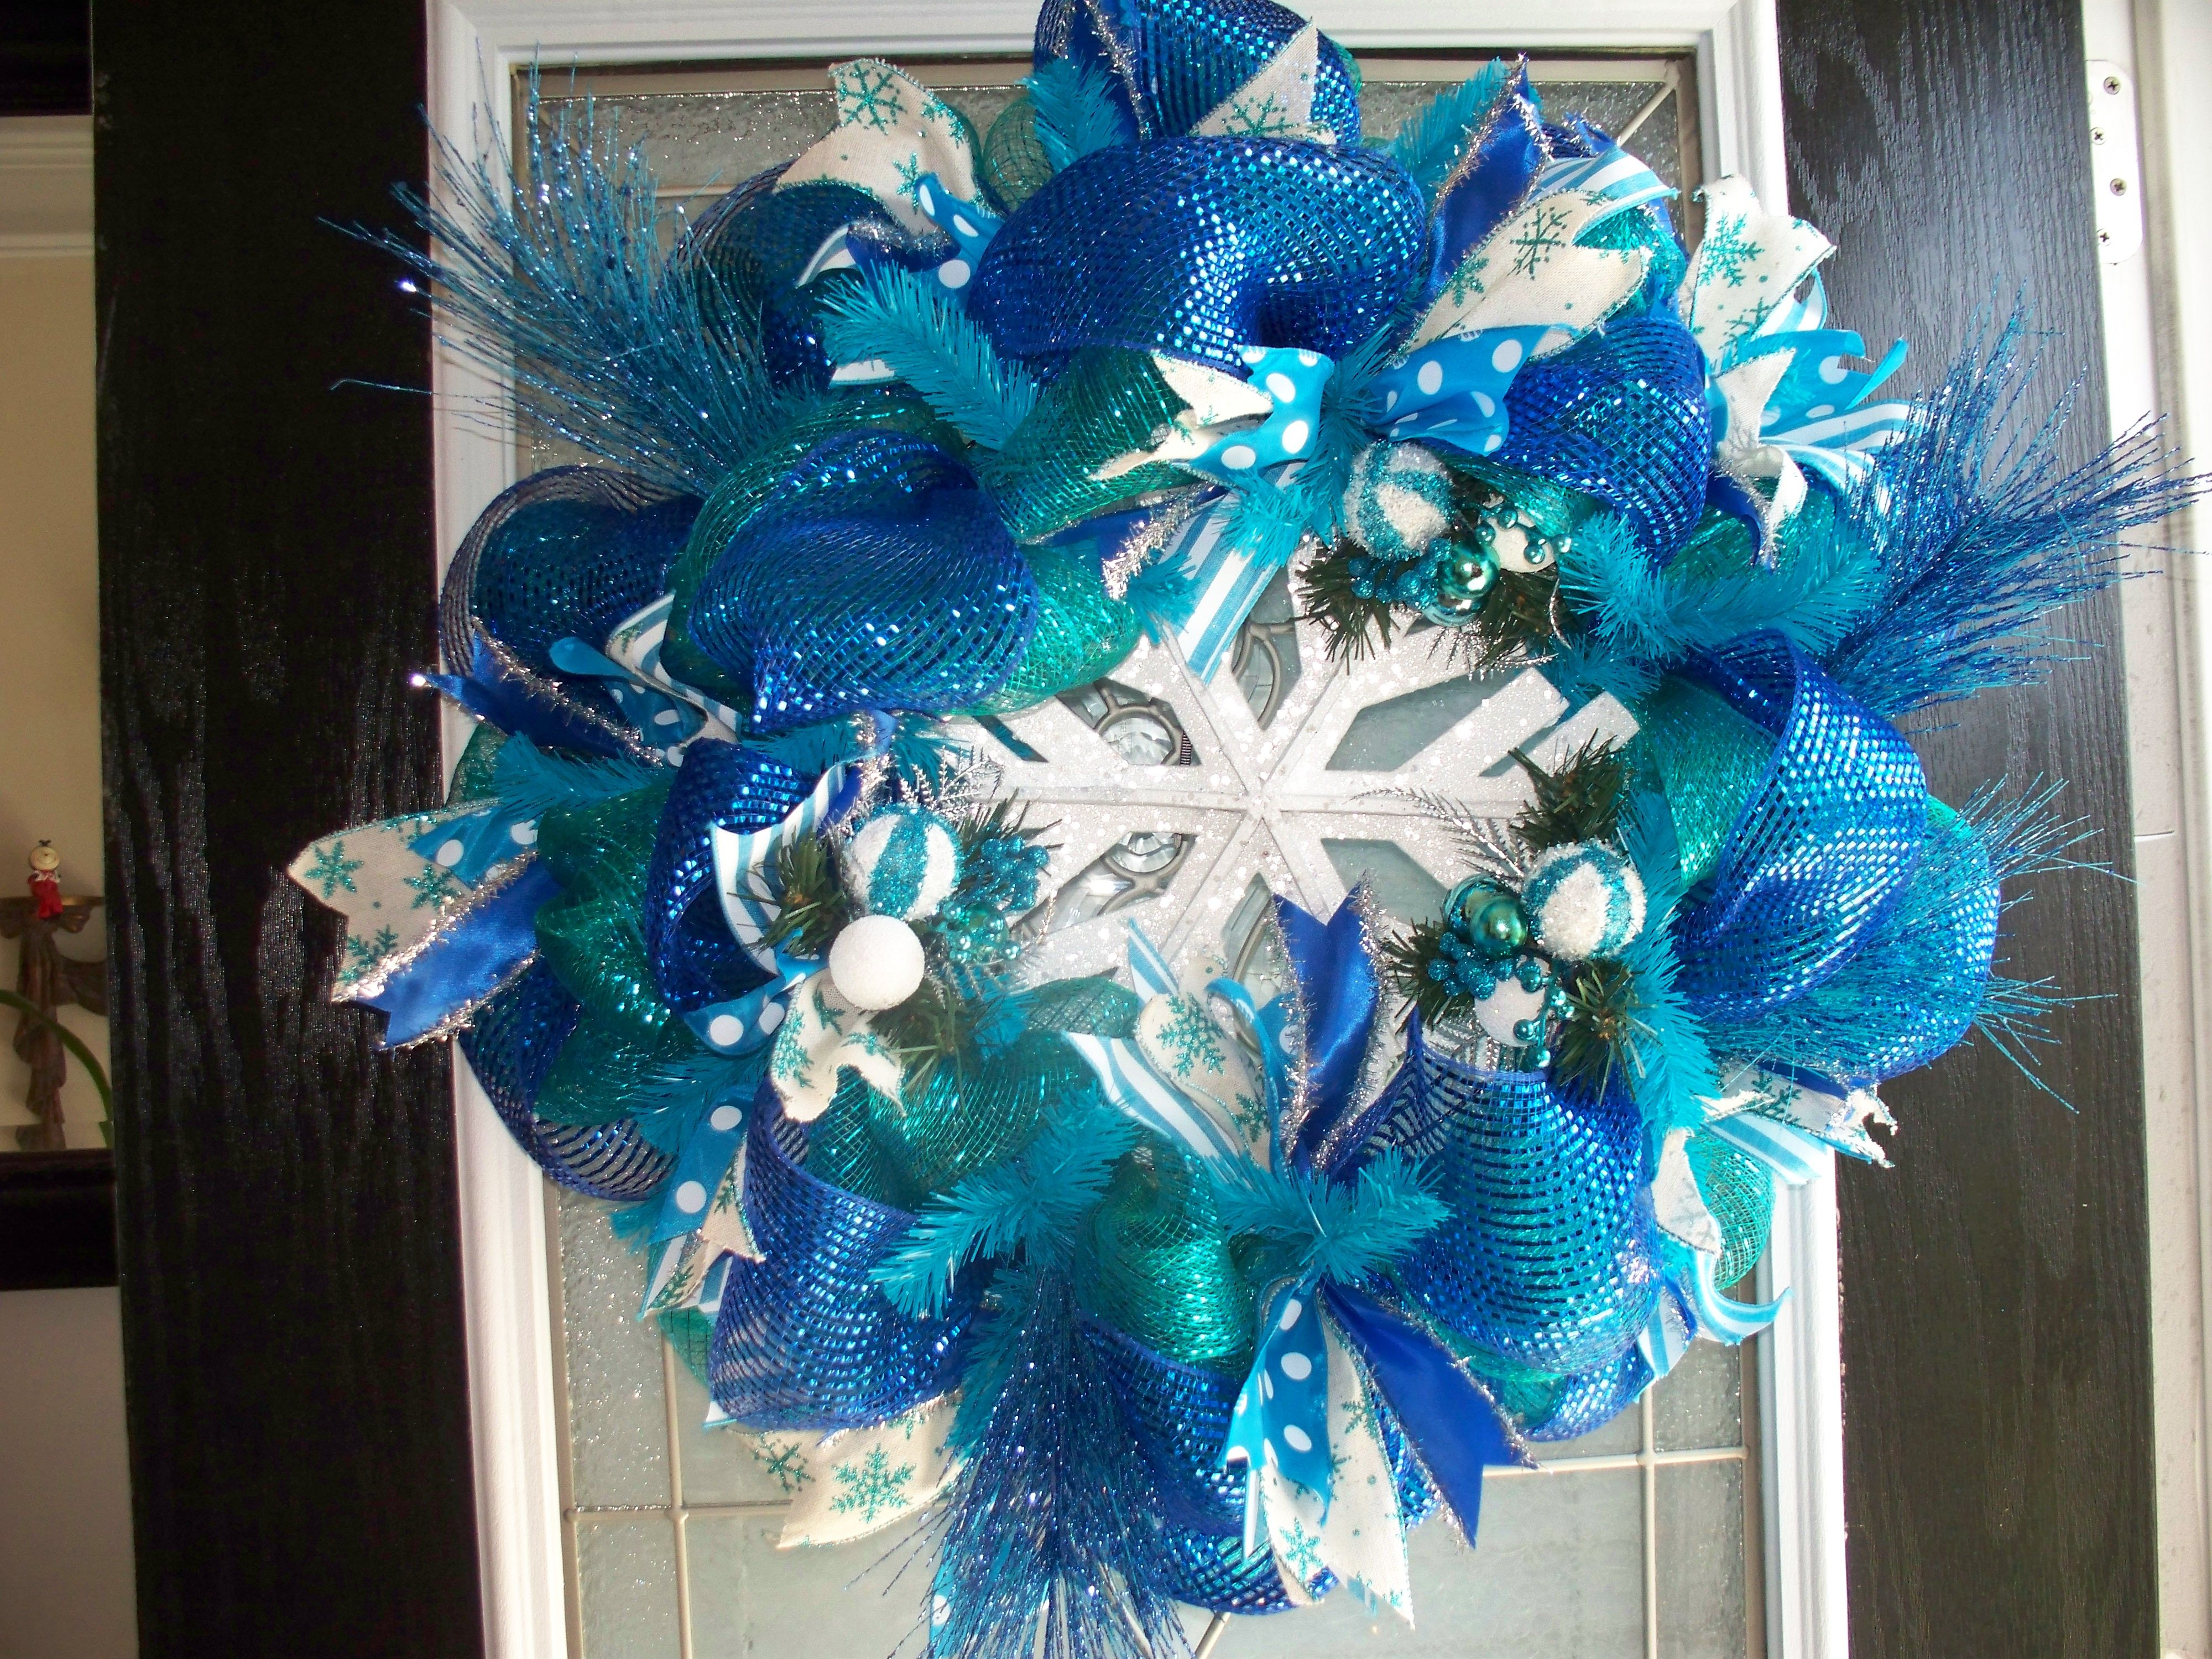 Created by Wreaths Bows and Things